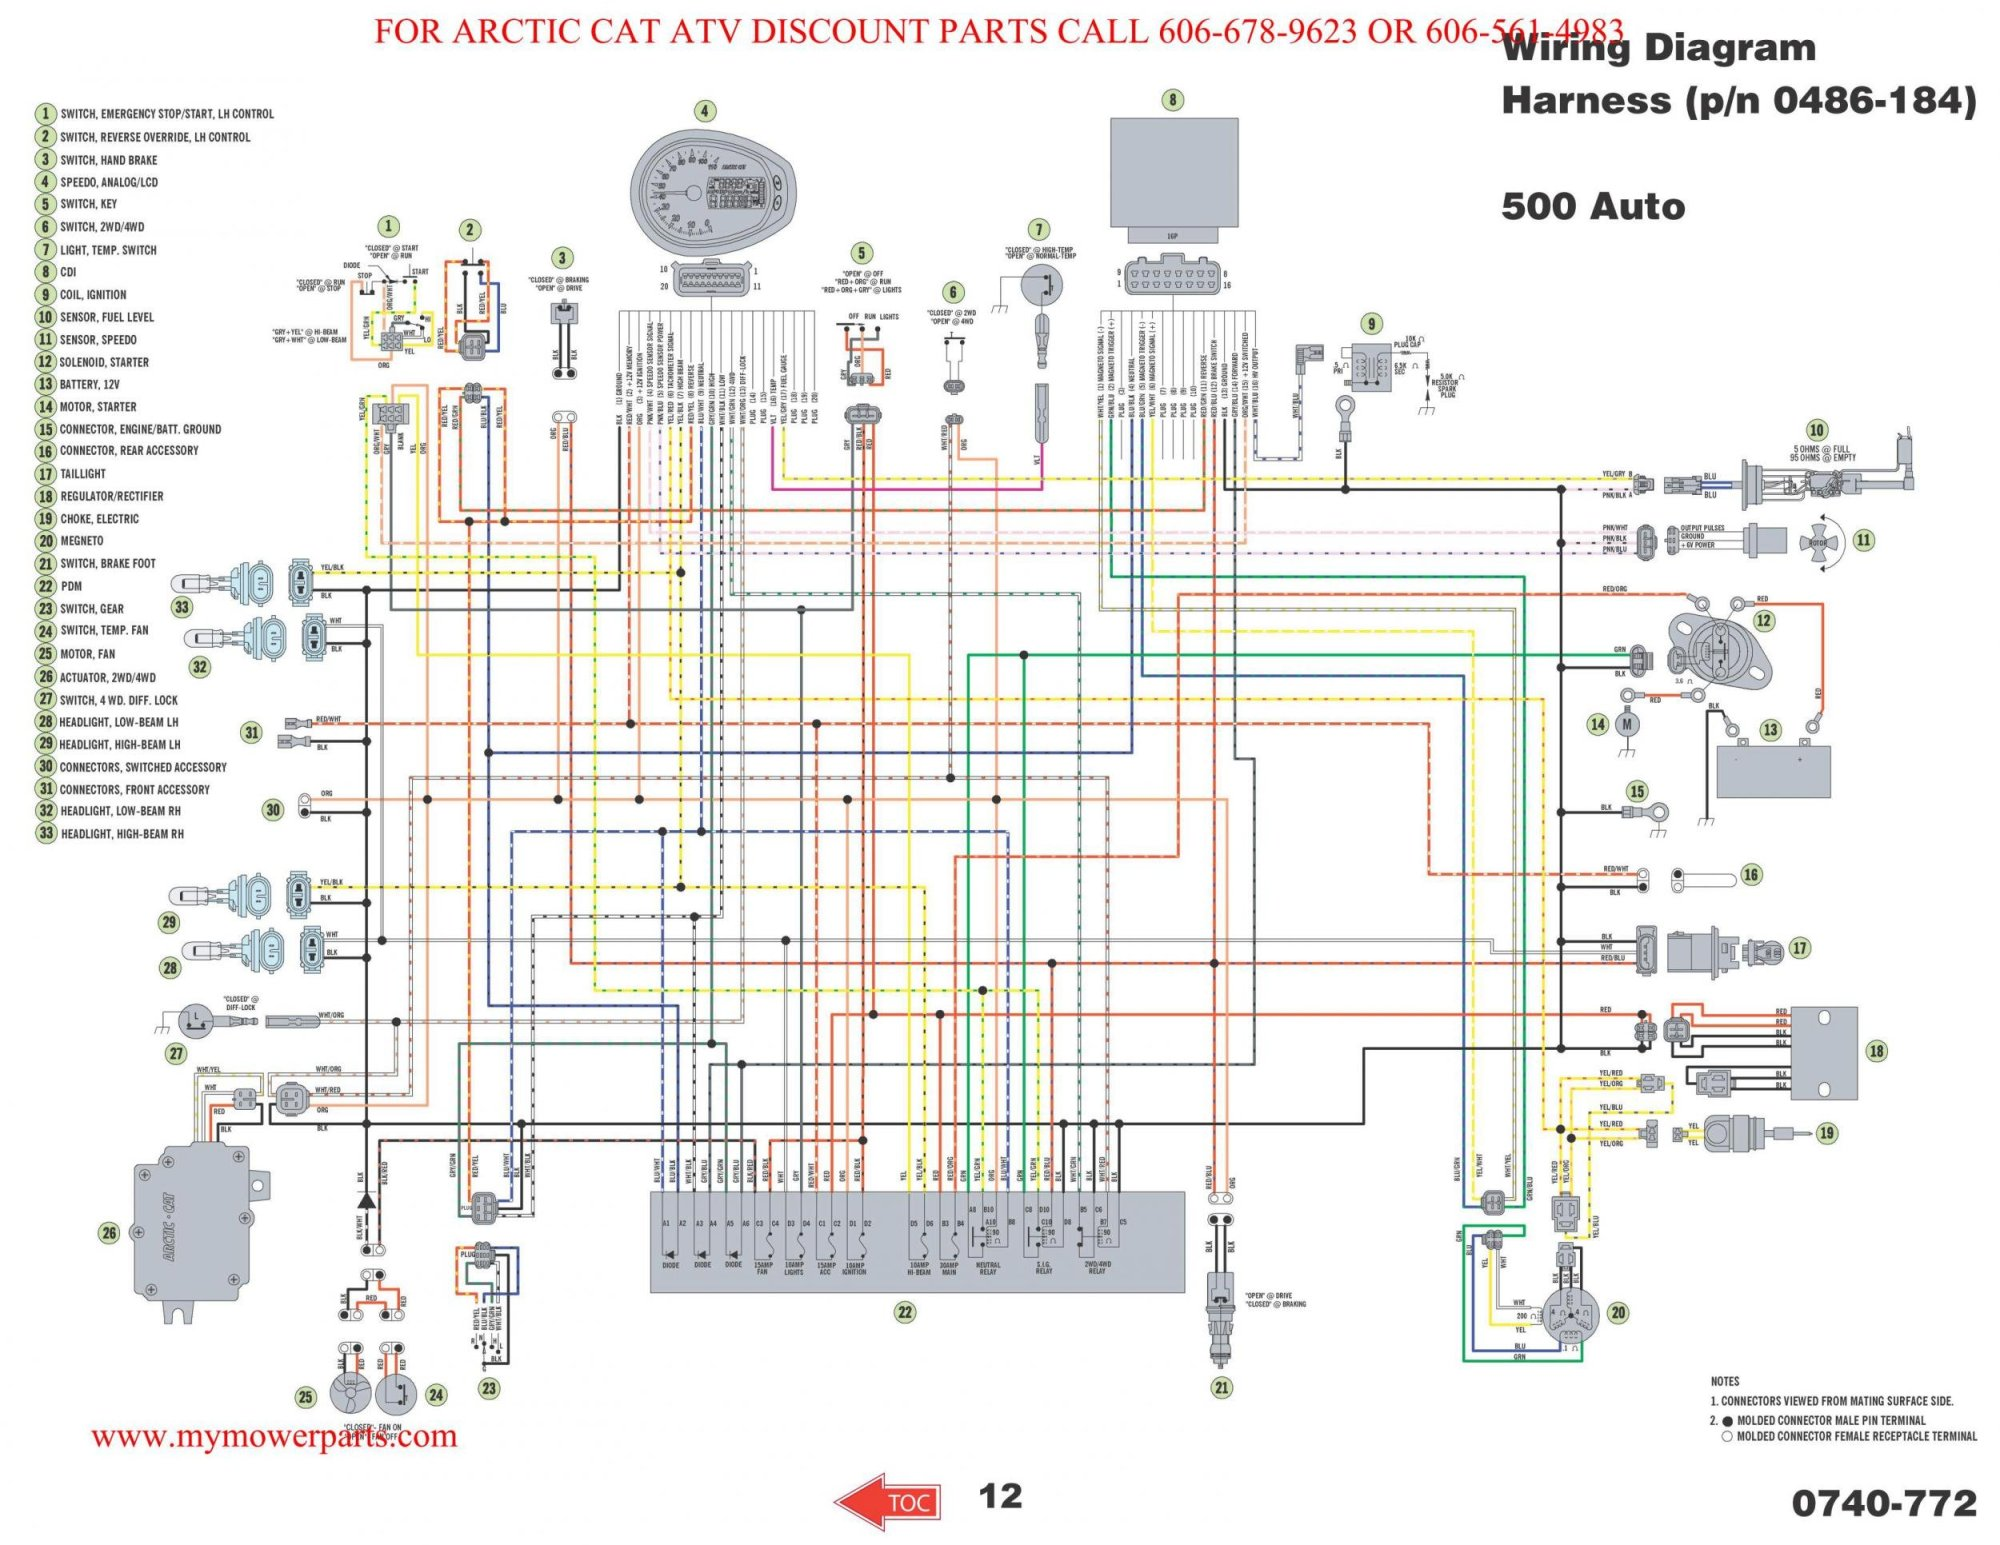 hight resolution of polaris atv wiring diagram wiring diagram diagram of polaris atv parts 1989 w897527 trail boss 2x4 wiring